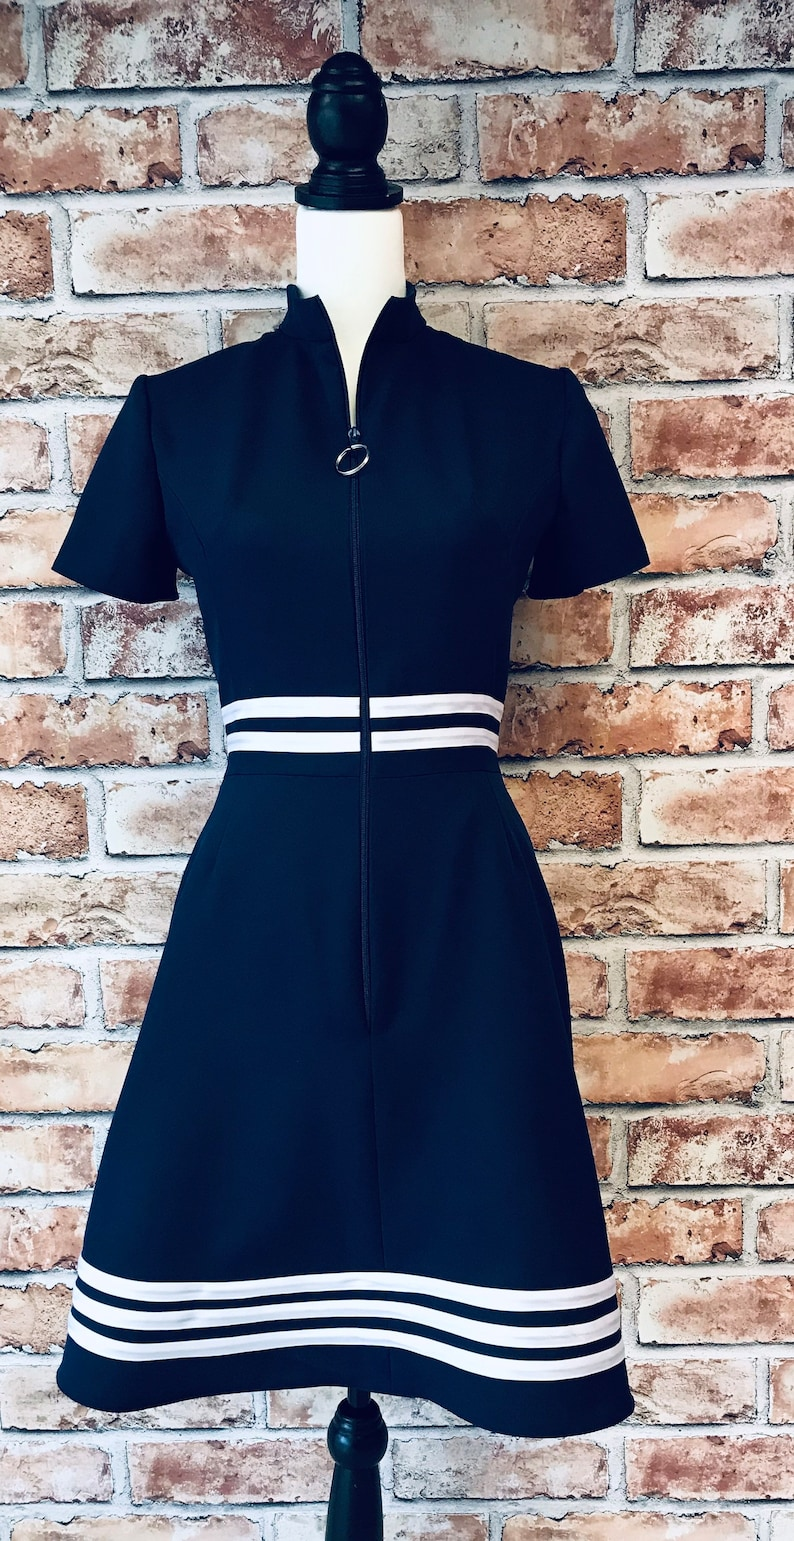 60s Dresses | 1960s Dresses Mod, Mini, Hippie 1960s Mod dress navy and white Turtle collar zip front fit and flare $104.00 AT vintagedancer.com